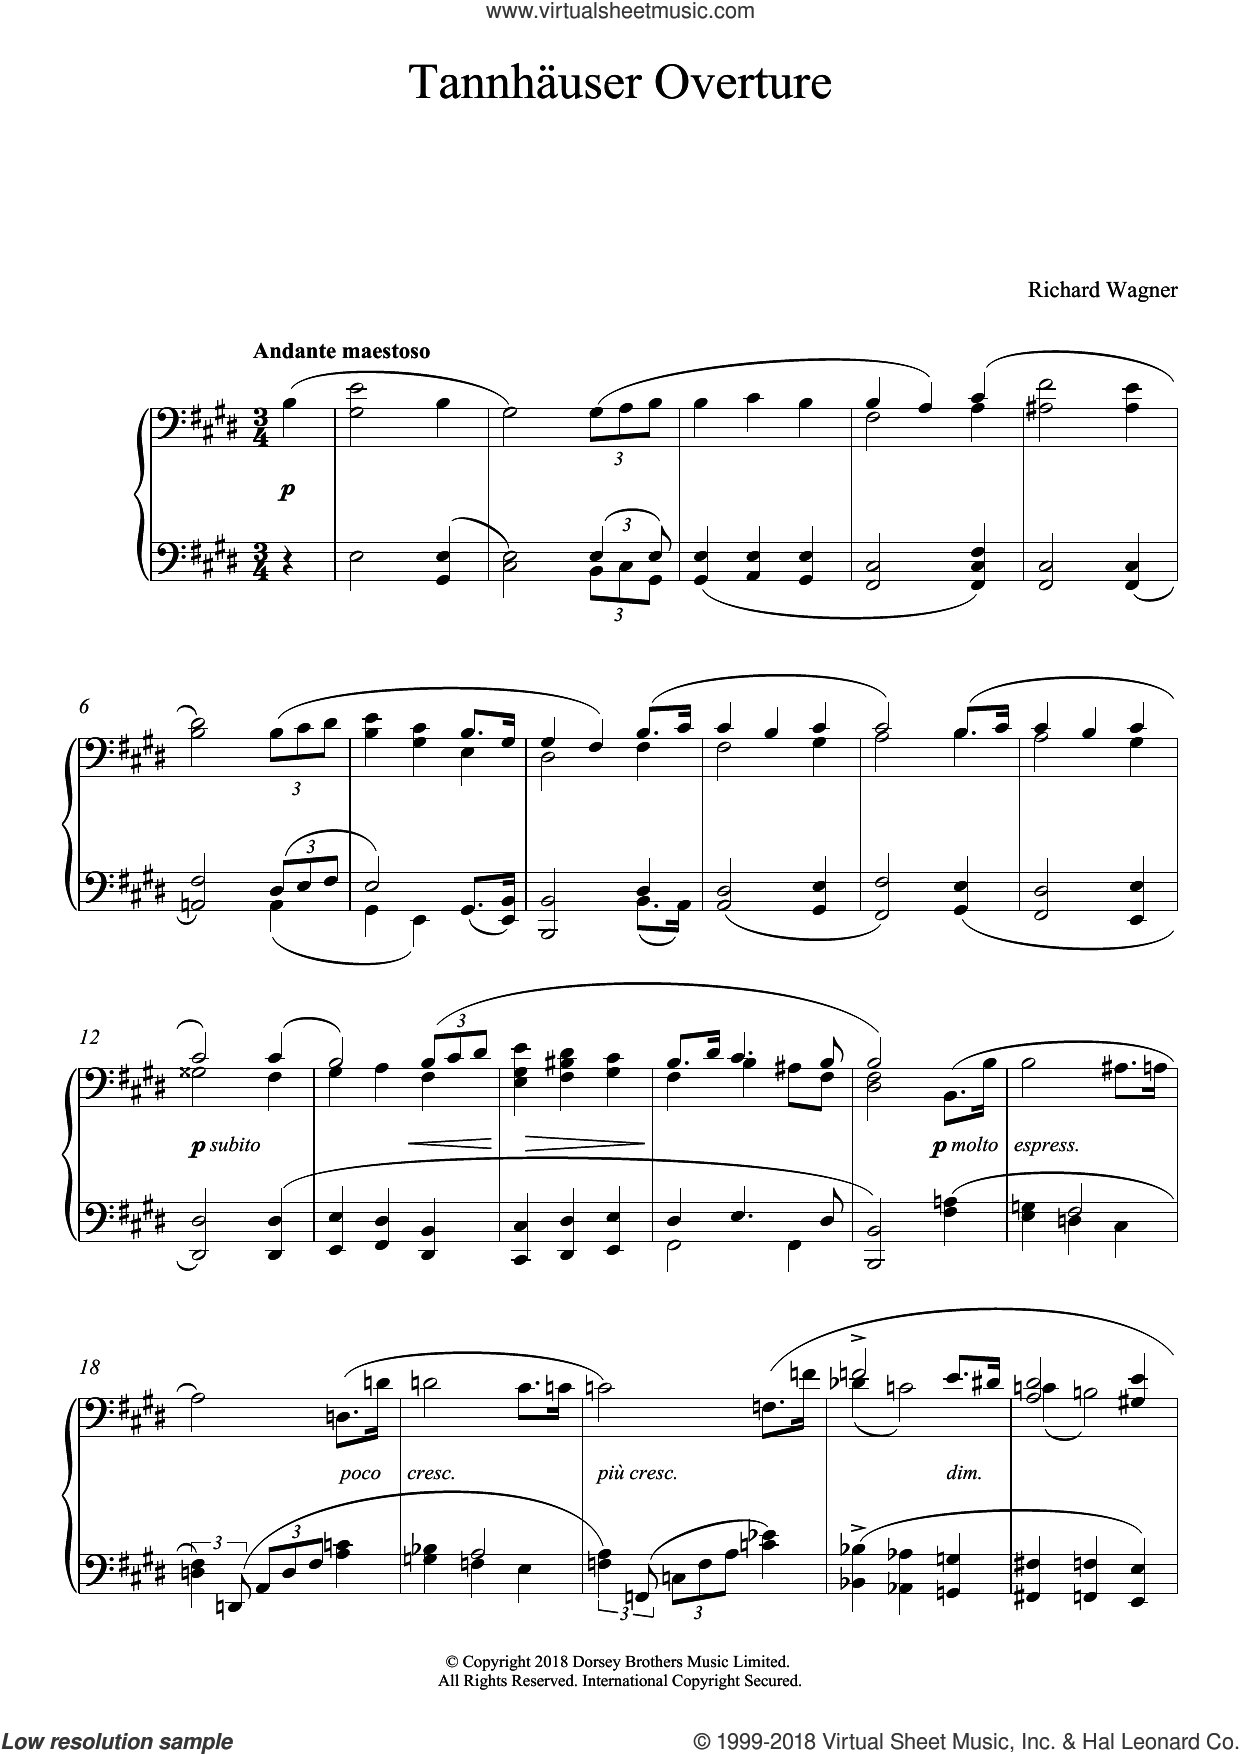 Tannhauser Overture sheet music for piano solo by Richard Wagner, classical score, intermediate skill level